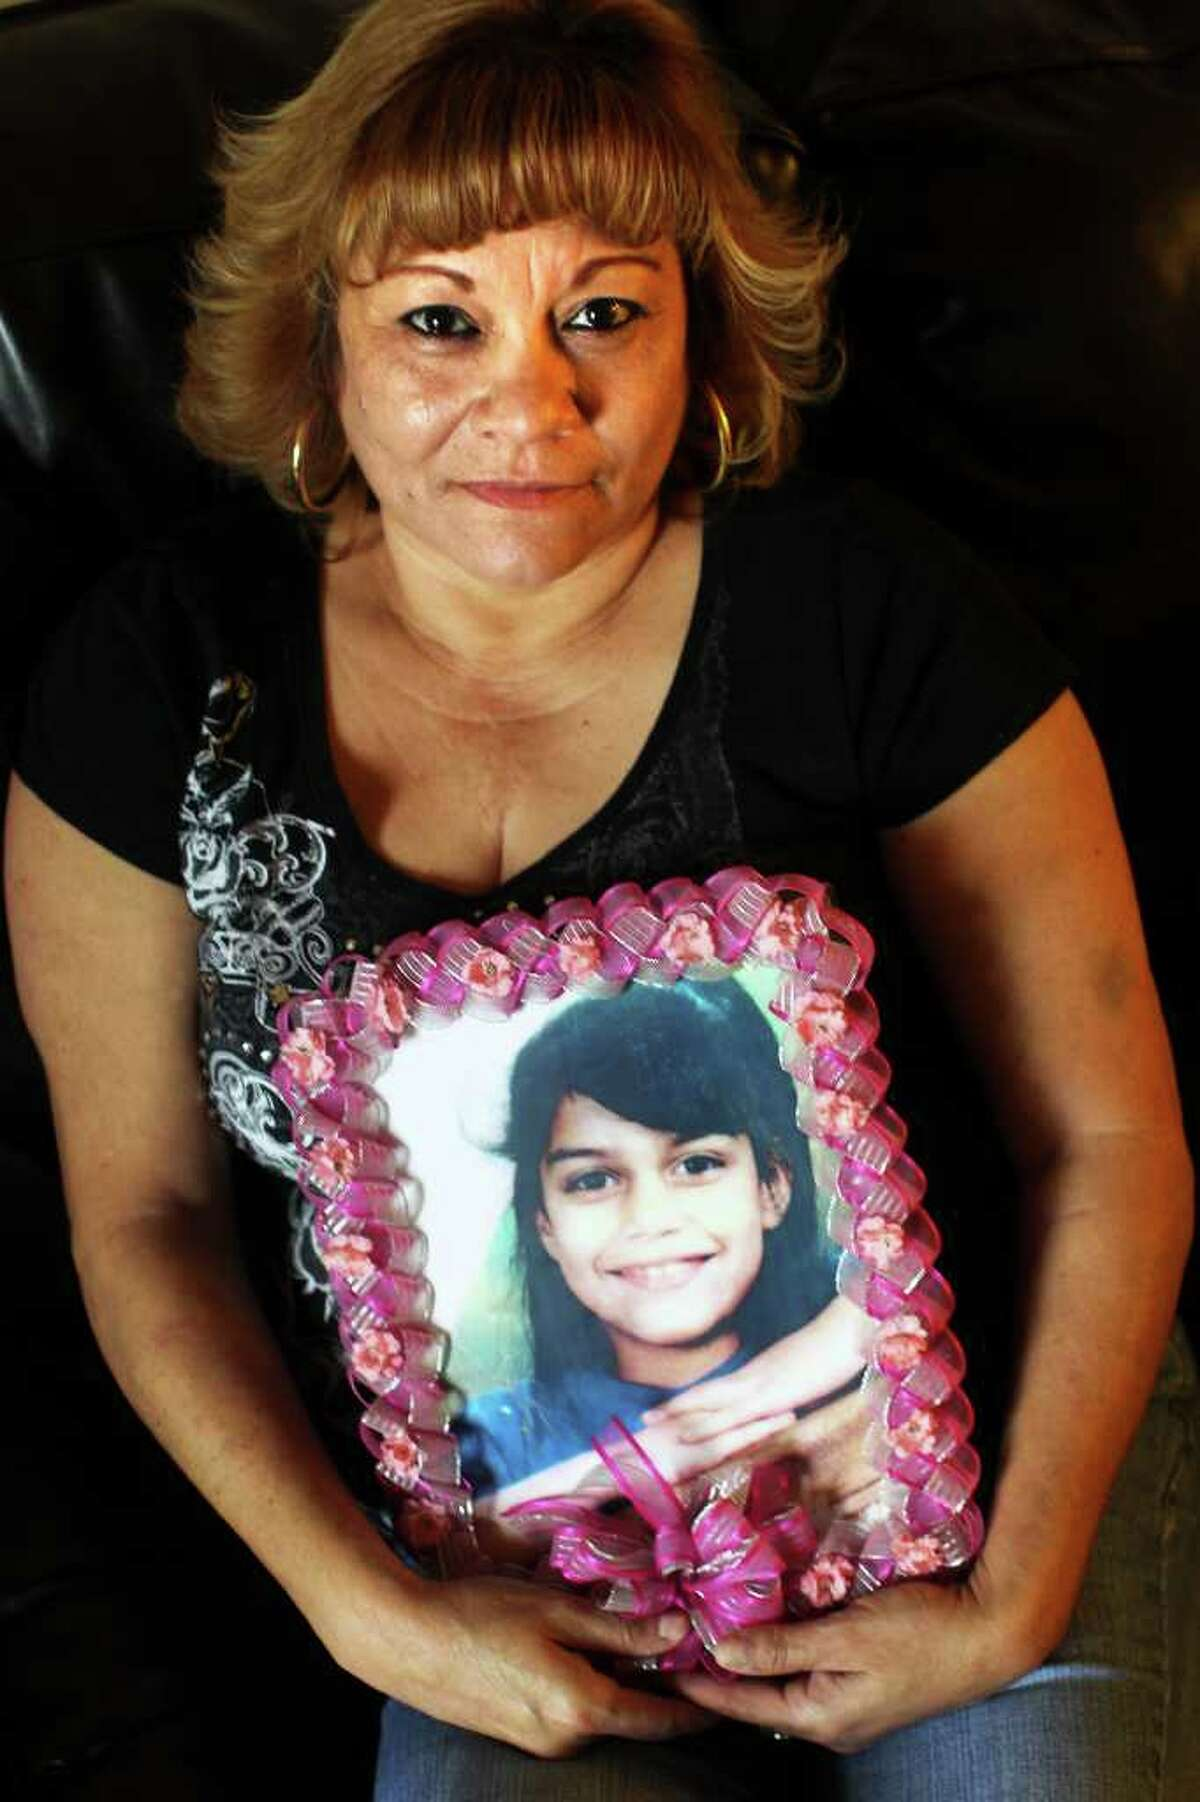 Diana Berlanga, whose 7-year-old daughter Alyssa Vasquez was raped and strangled to death in 1999, is shown at her home. Guadalupe Esparza was convicted in the capital murder and is set to be executed.